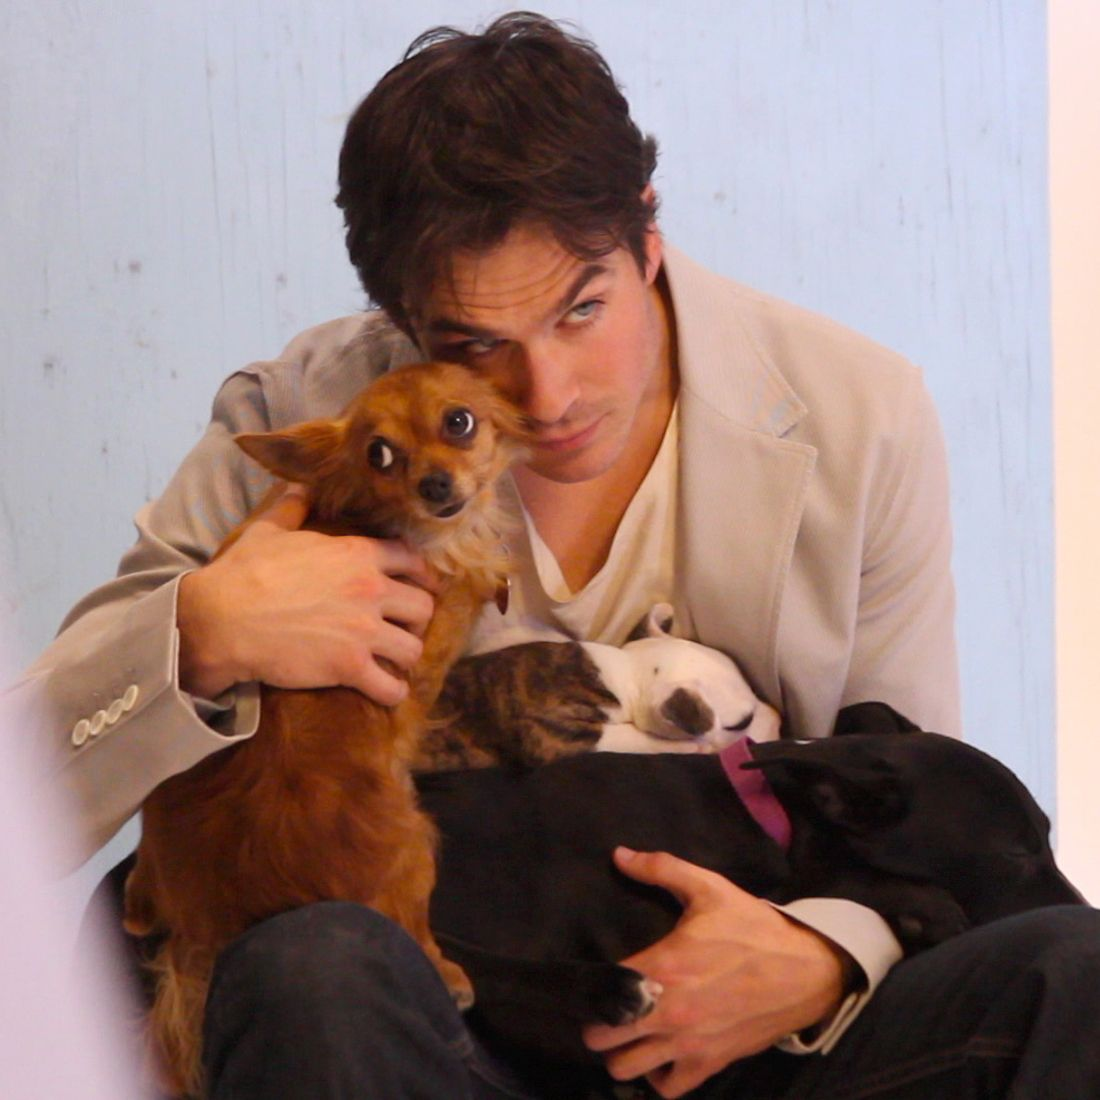 How cute is Ian Somerhalder with these puppies? Omg!